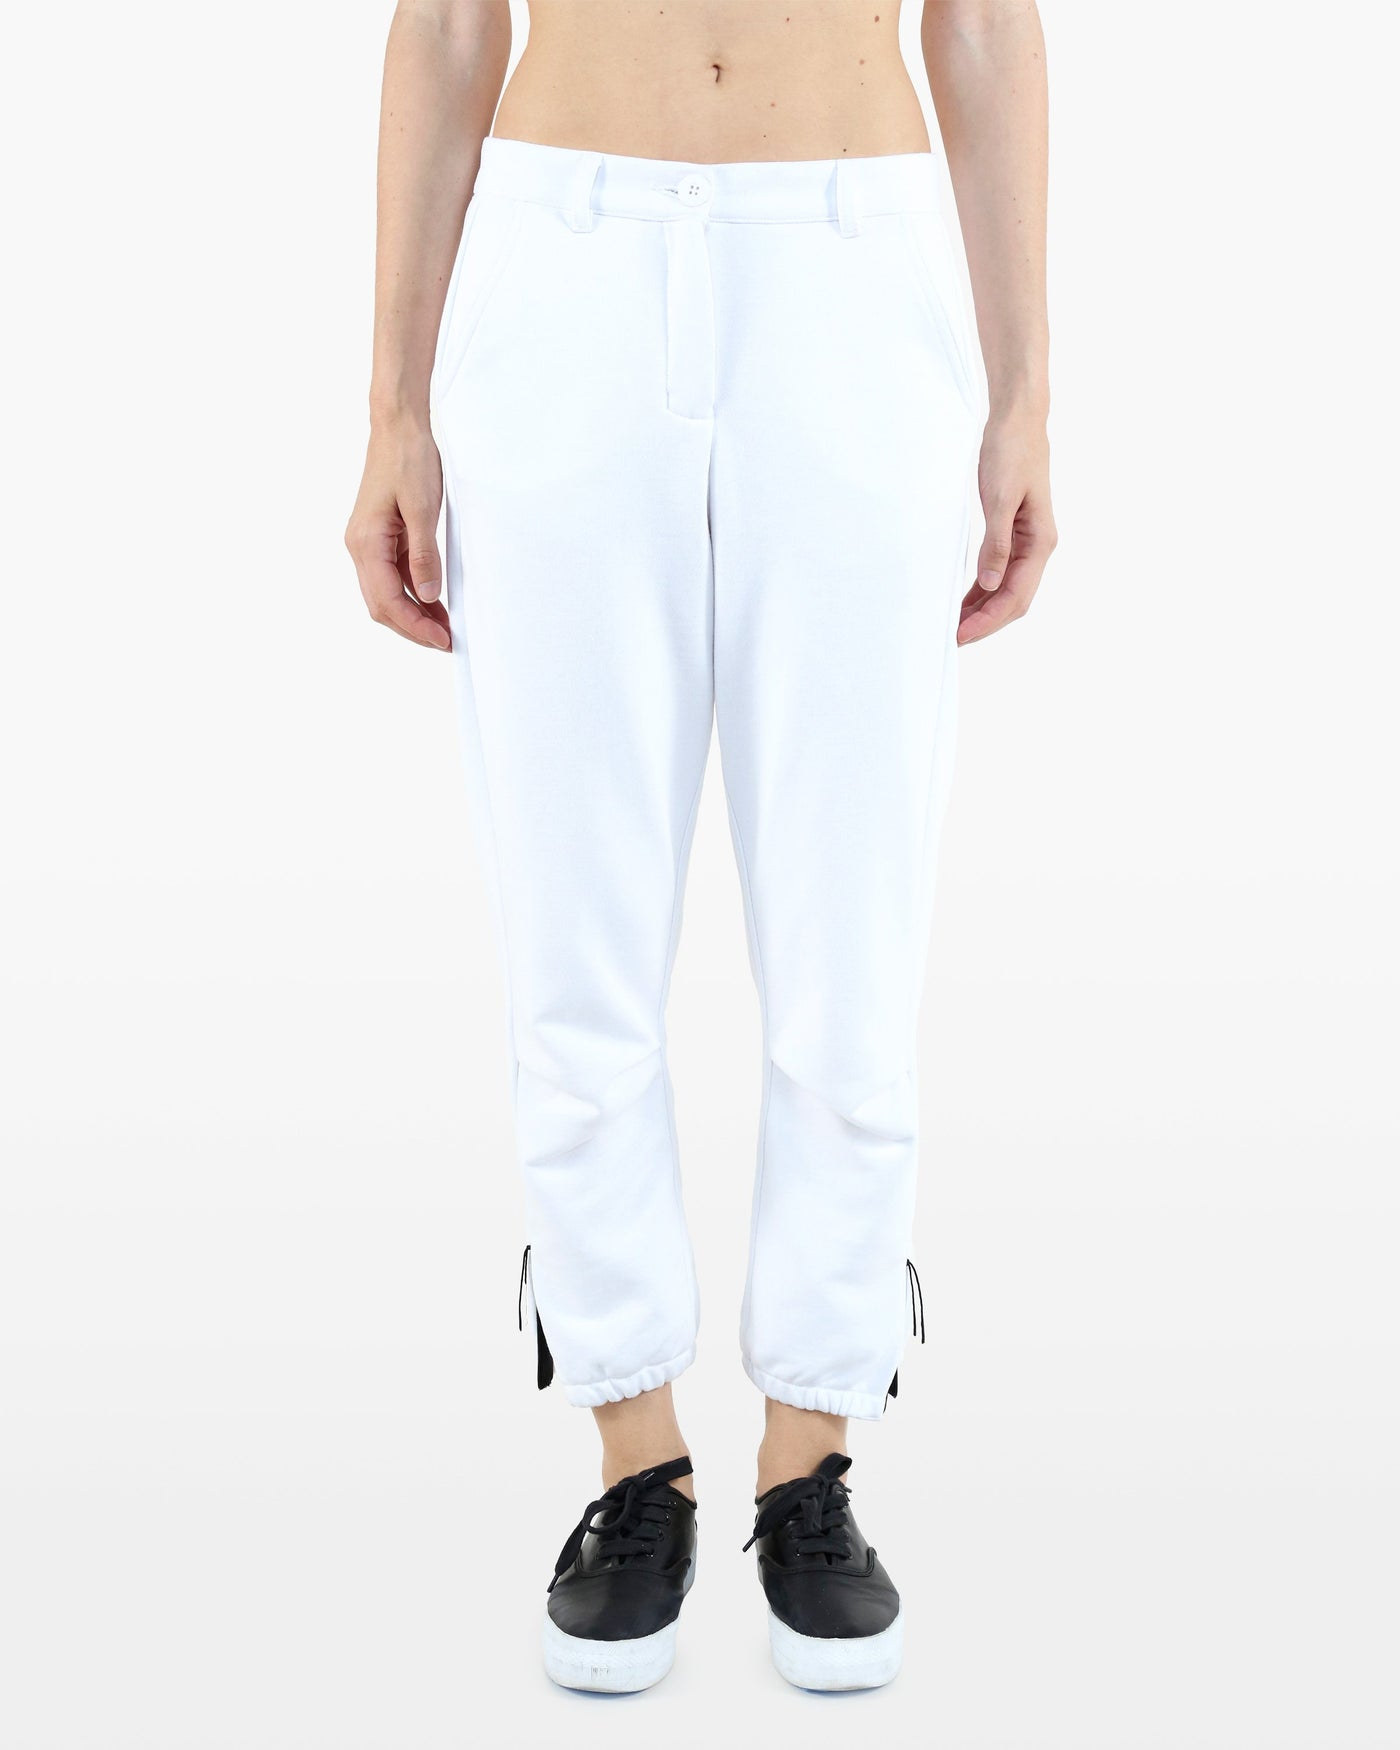 Lovelace Pant DDT in white